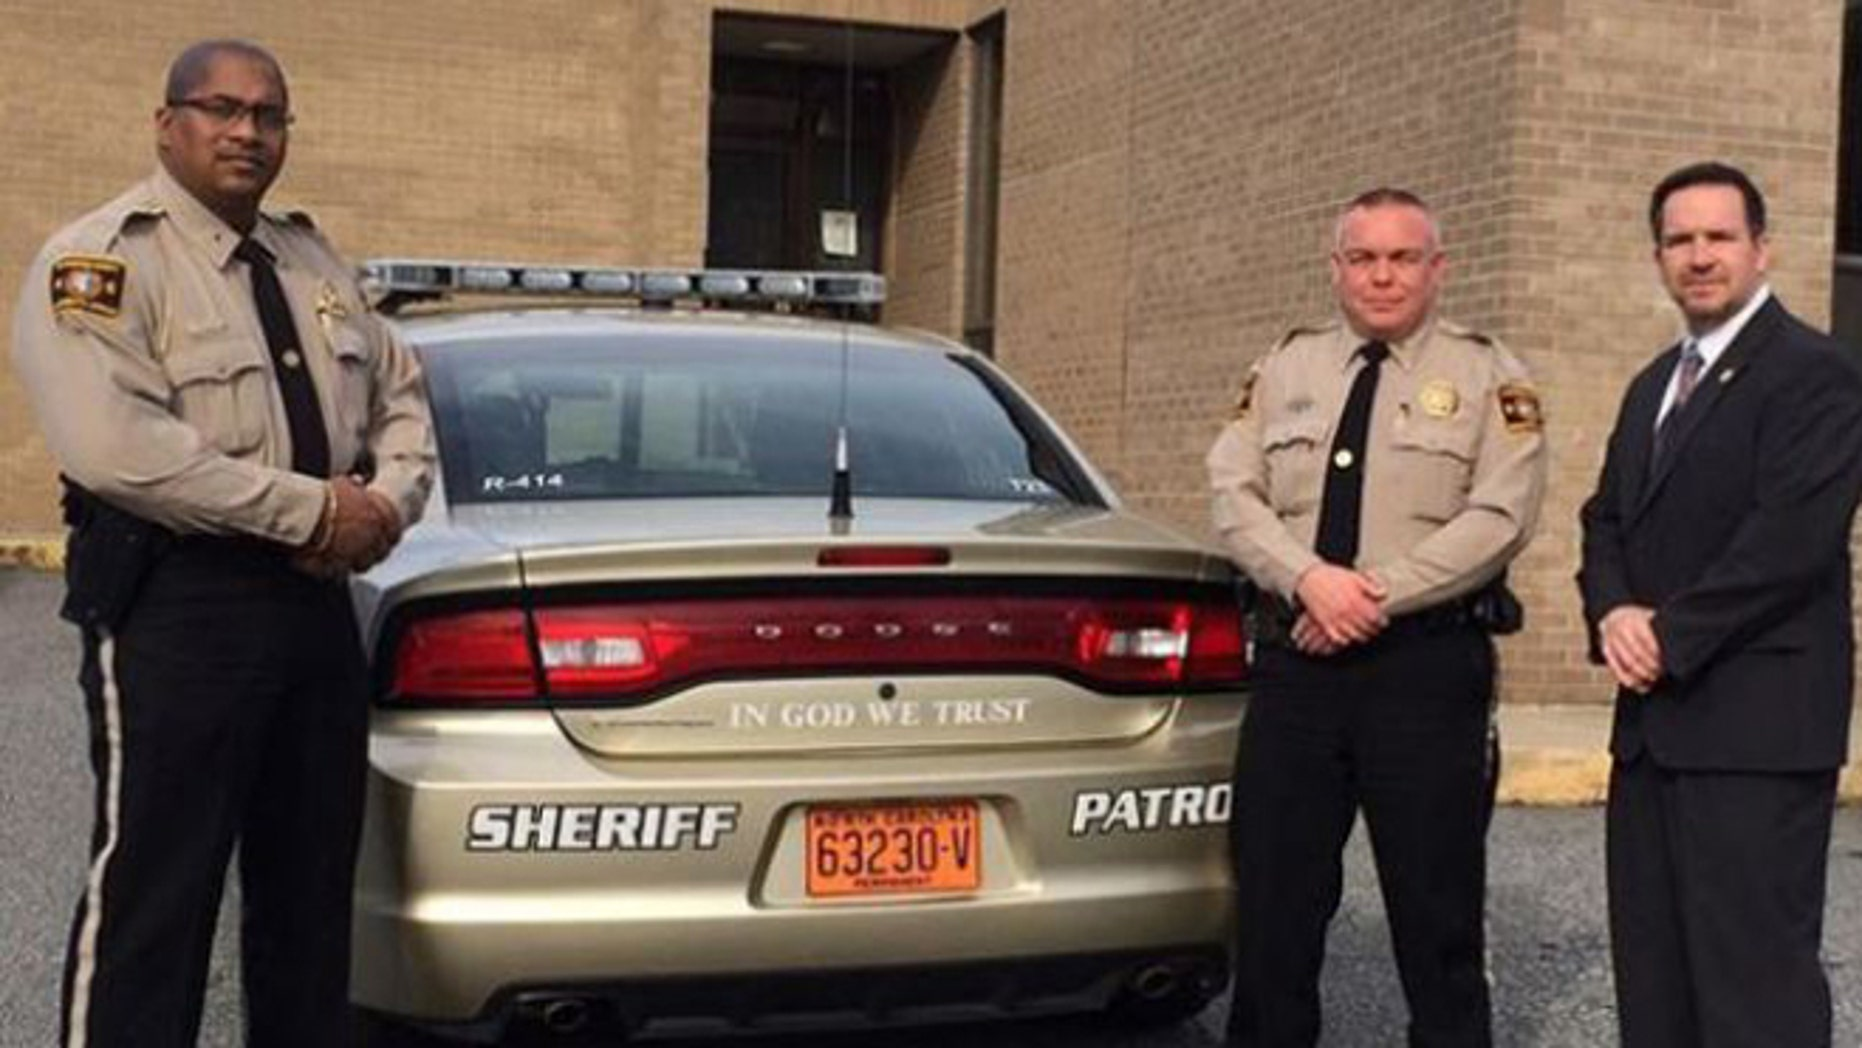 Lt. Leon Godlock, Lt Warren Sprouse and Sheriff Chris Francis. (Rutherford County Sheriff's Office)